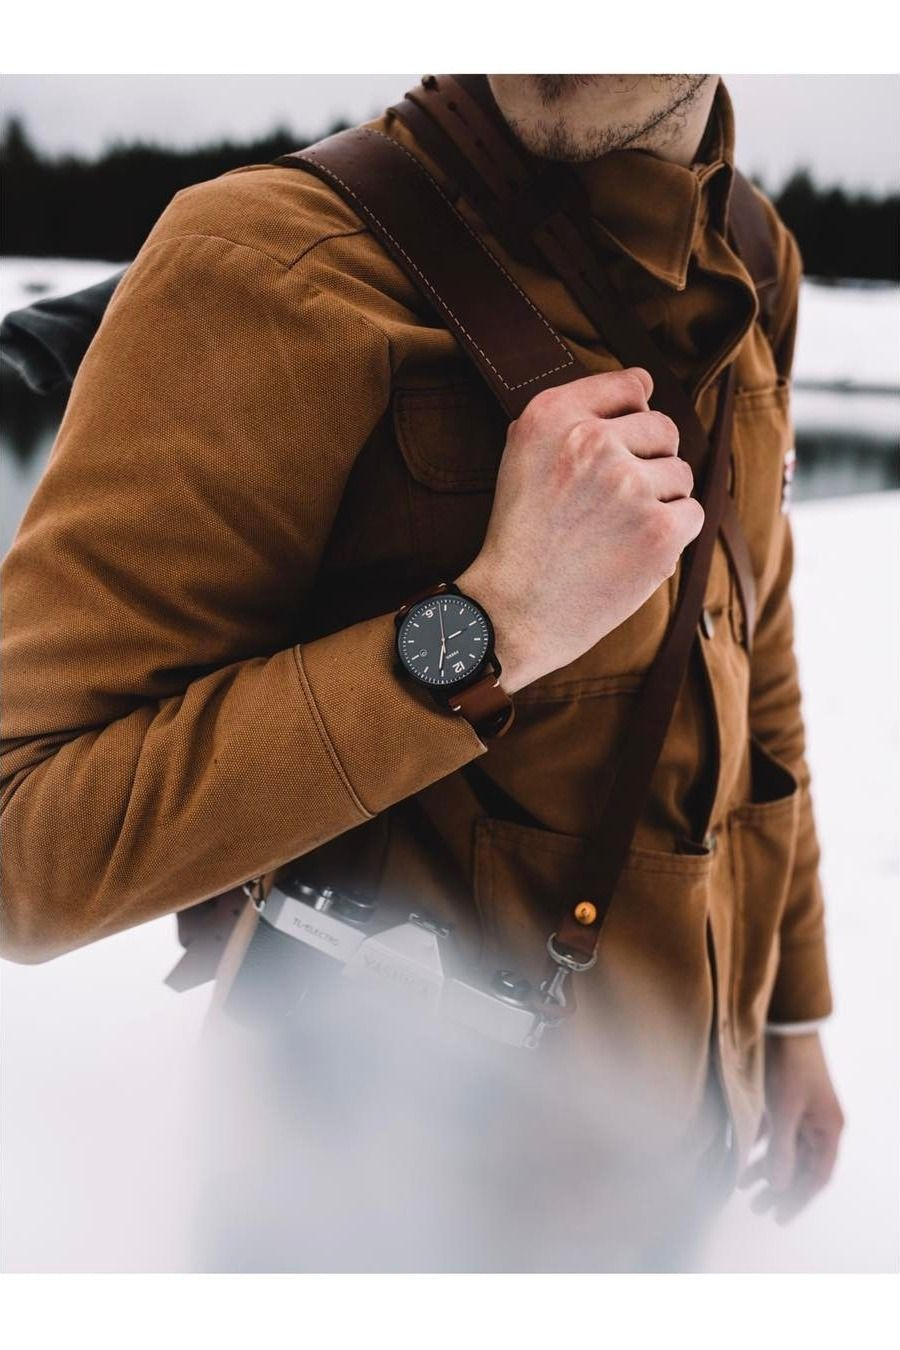 The-Commuter-Three-Hand-Date-Light-Brown-Leather-Watch.jpg